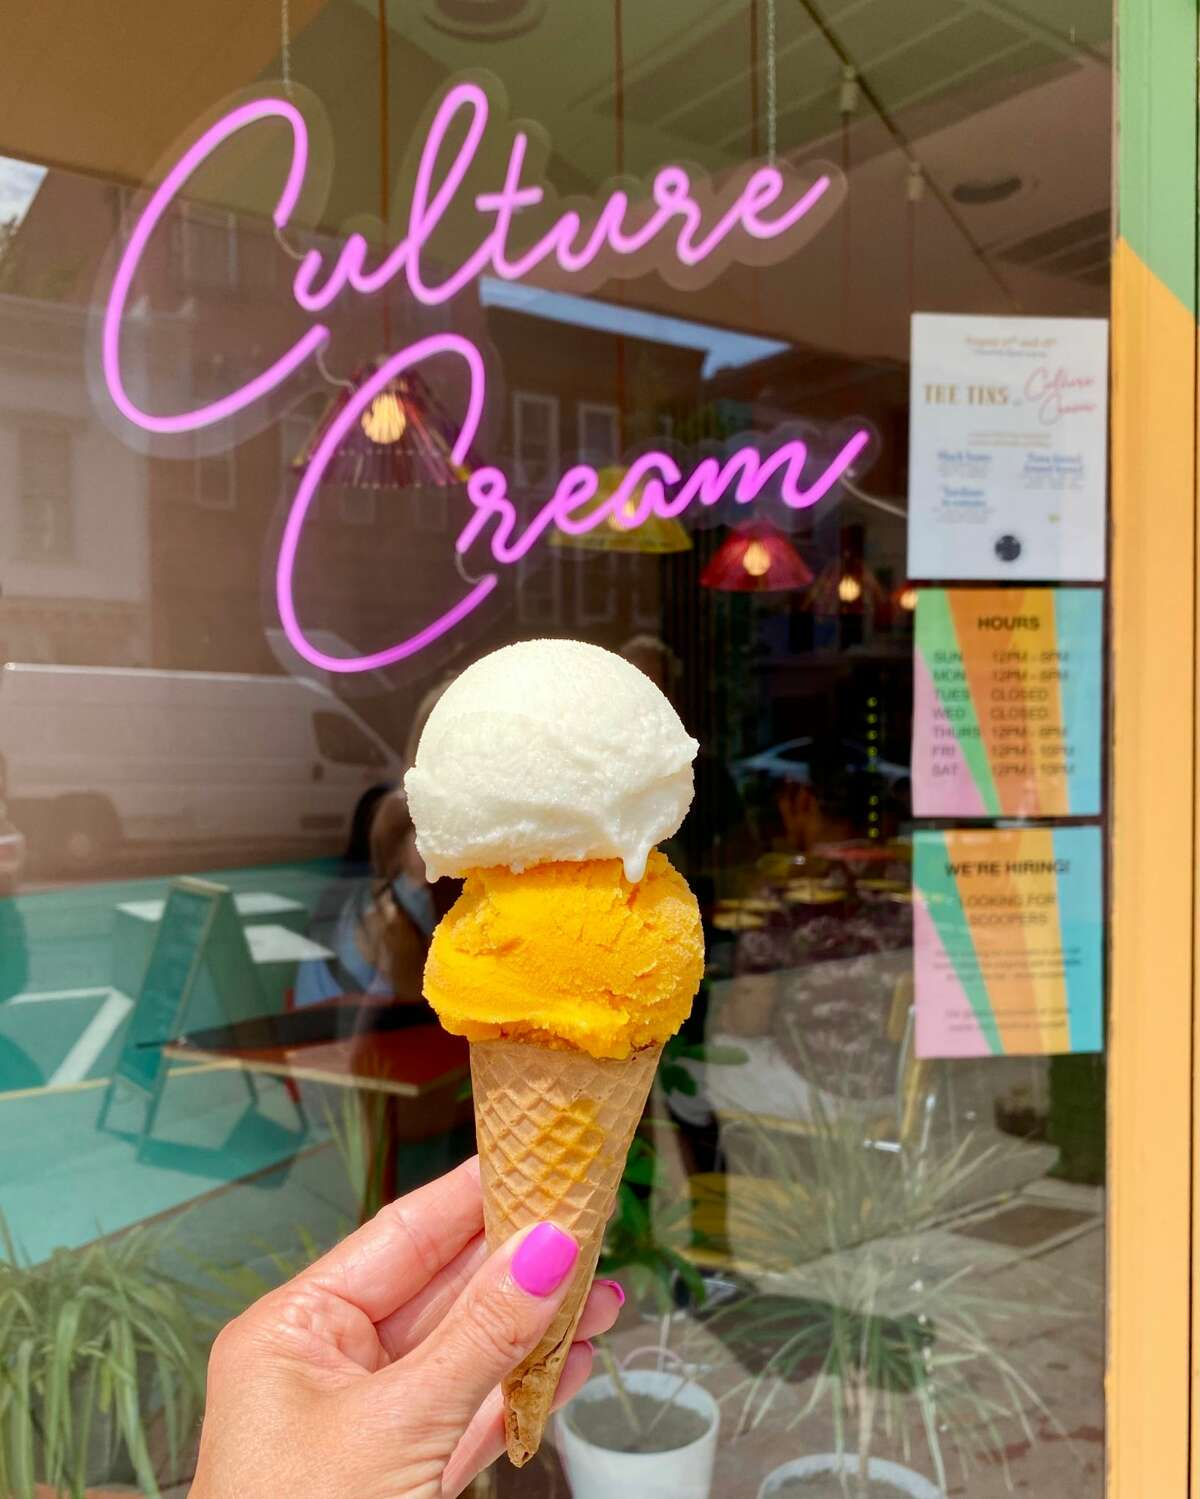 Kefir, a fermented milk with a sour taste, is the base of many of the frozen treats at Culture Cream in Hudson. (Susie Davidson Powell/for the Times Union)